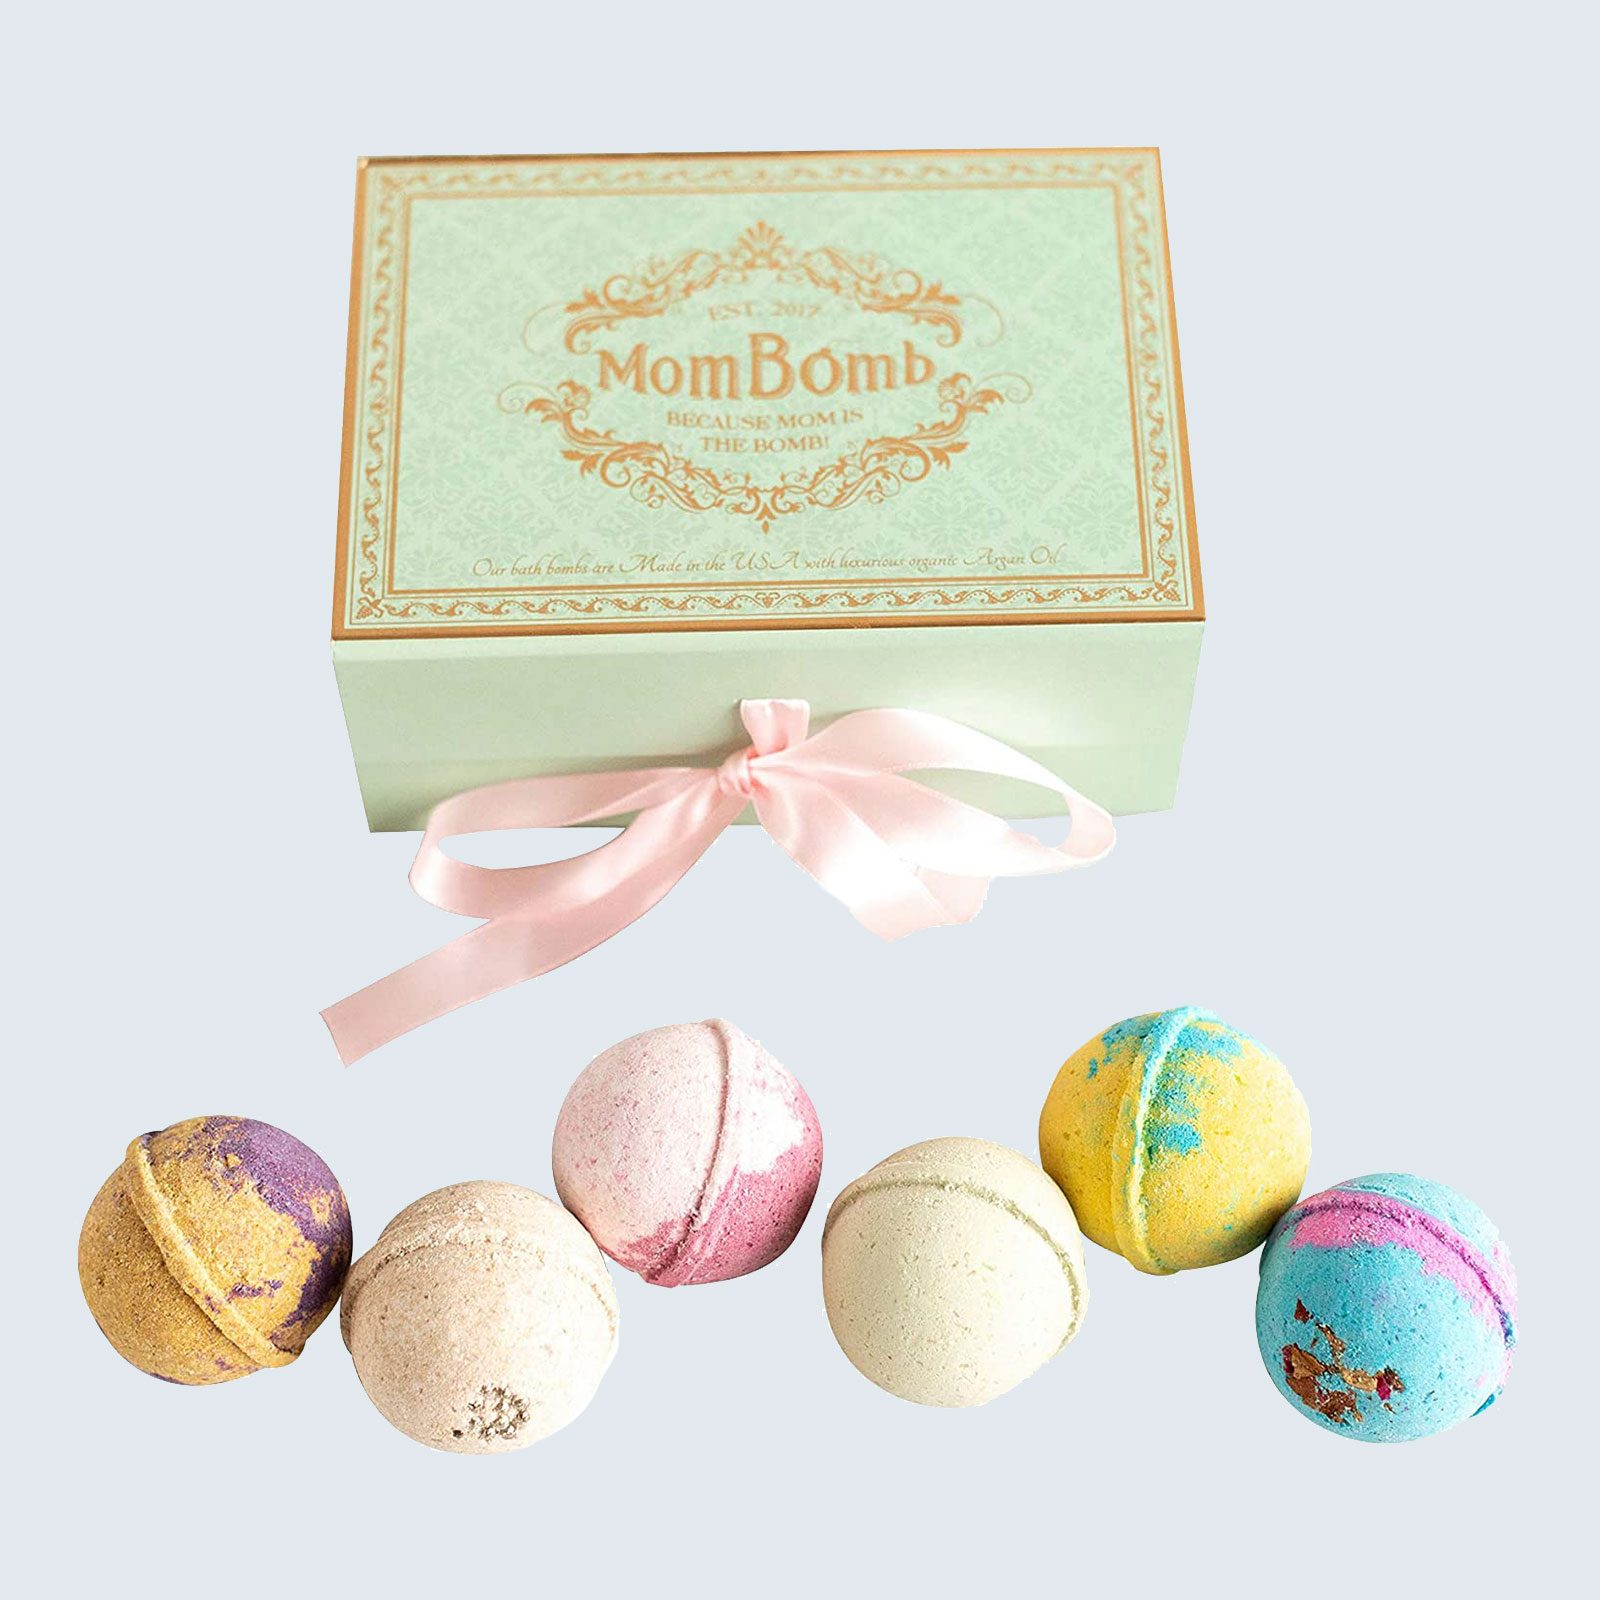 For the mom in need of self-care: Mom Bomb Ultra Luxury Bath Bombs